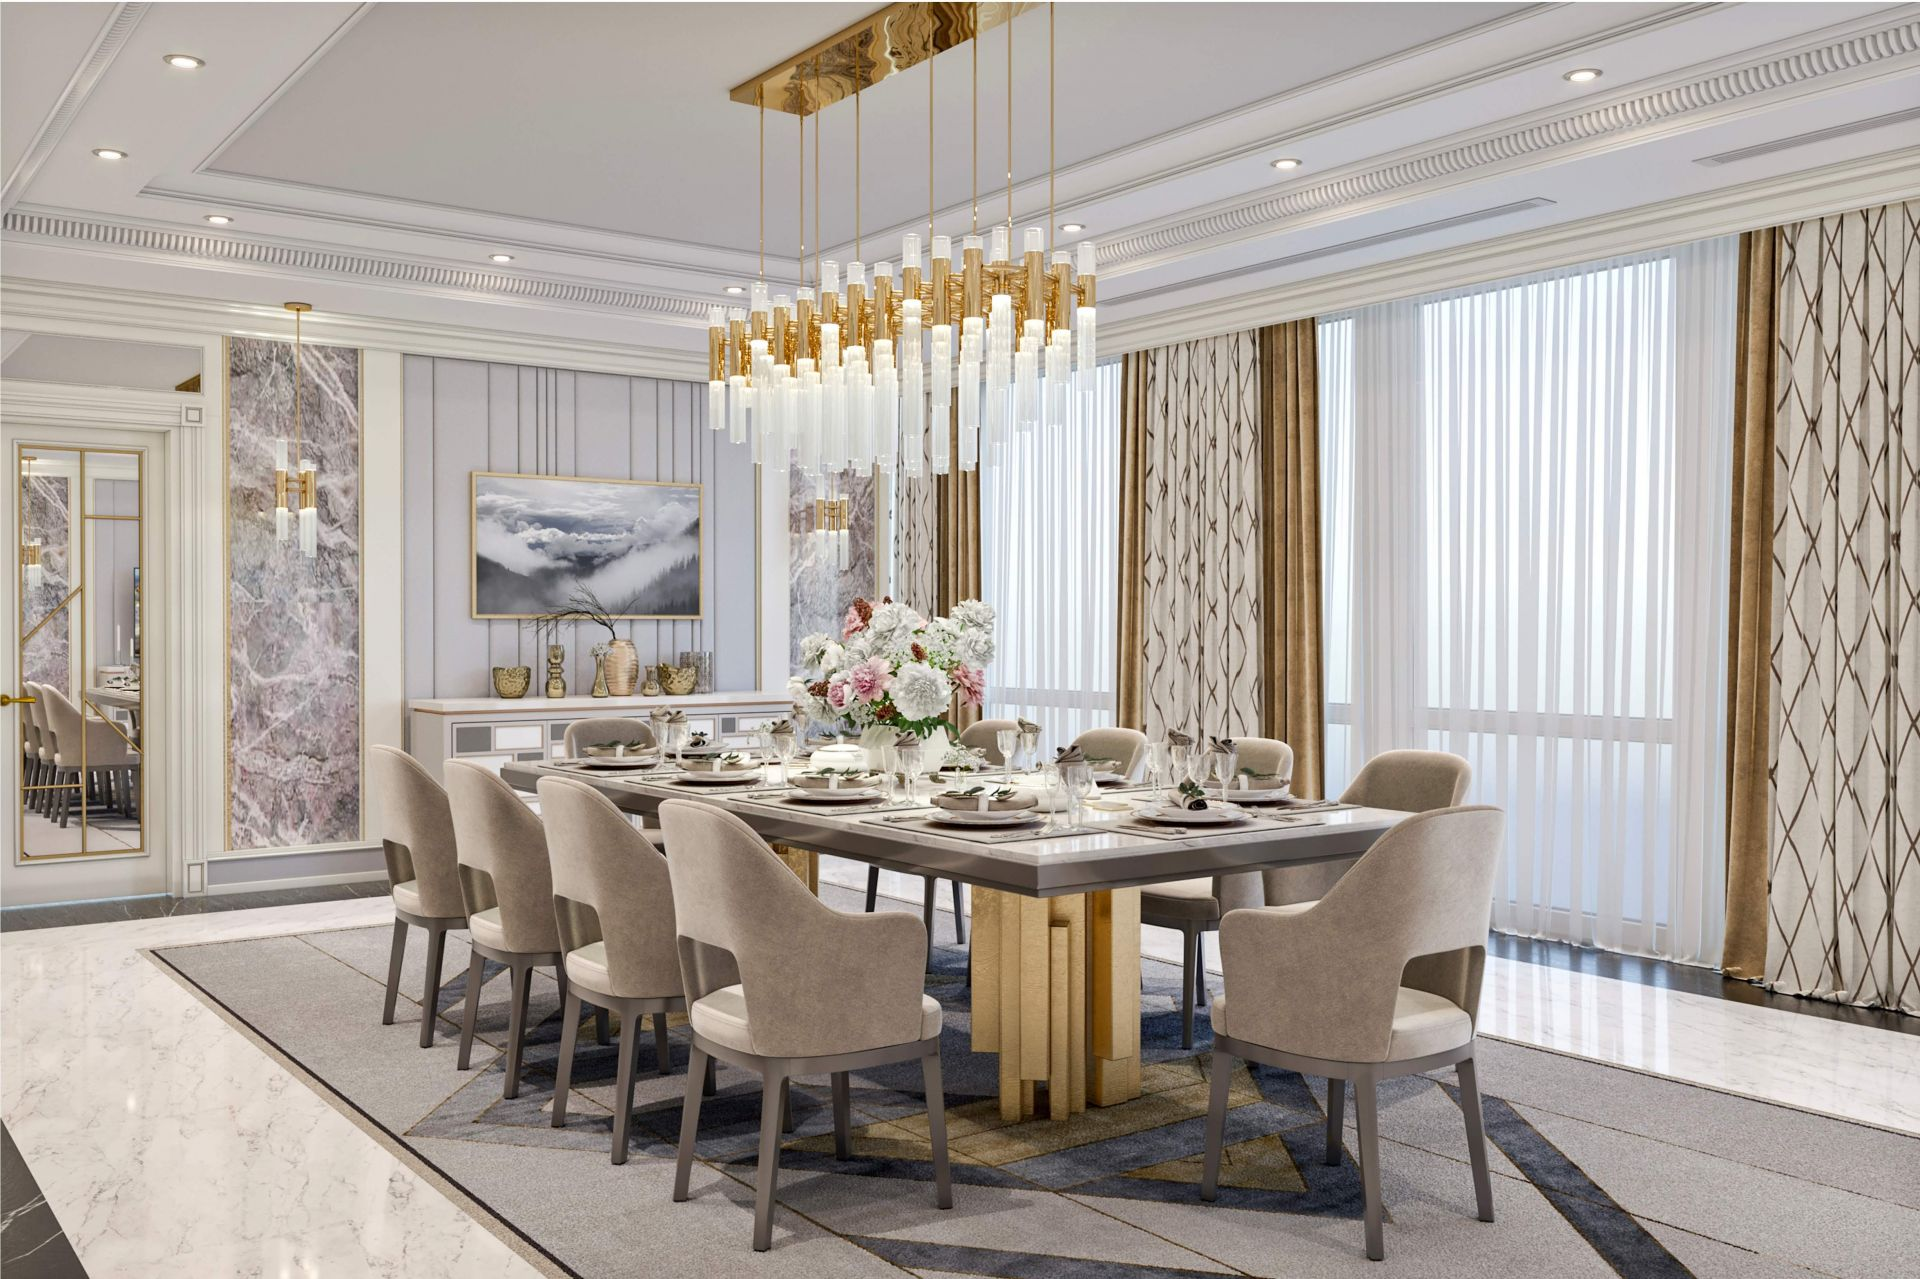 Design, Interior design of the living-dining room in the Hilton Hotel